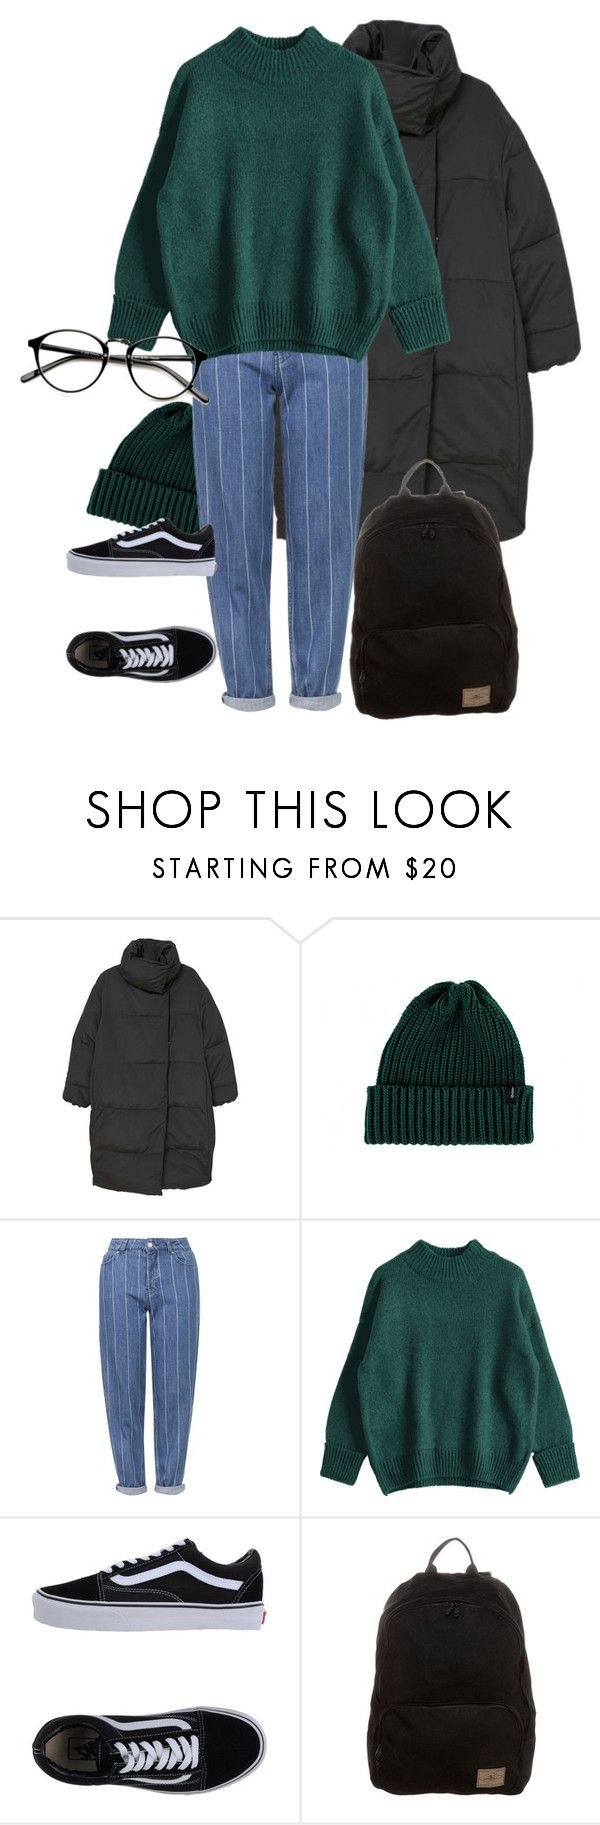 """26.10.2017"" by klorikon00 on Polyvore featuring MANGO, Brixton, Topshop, Vans and O'Neill"